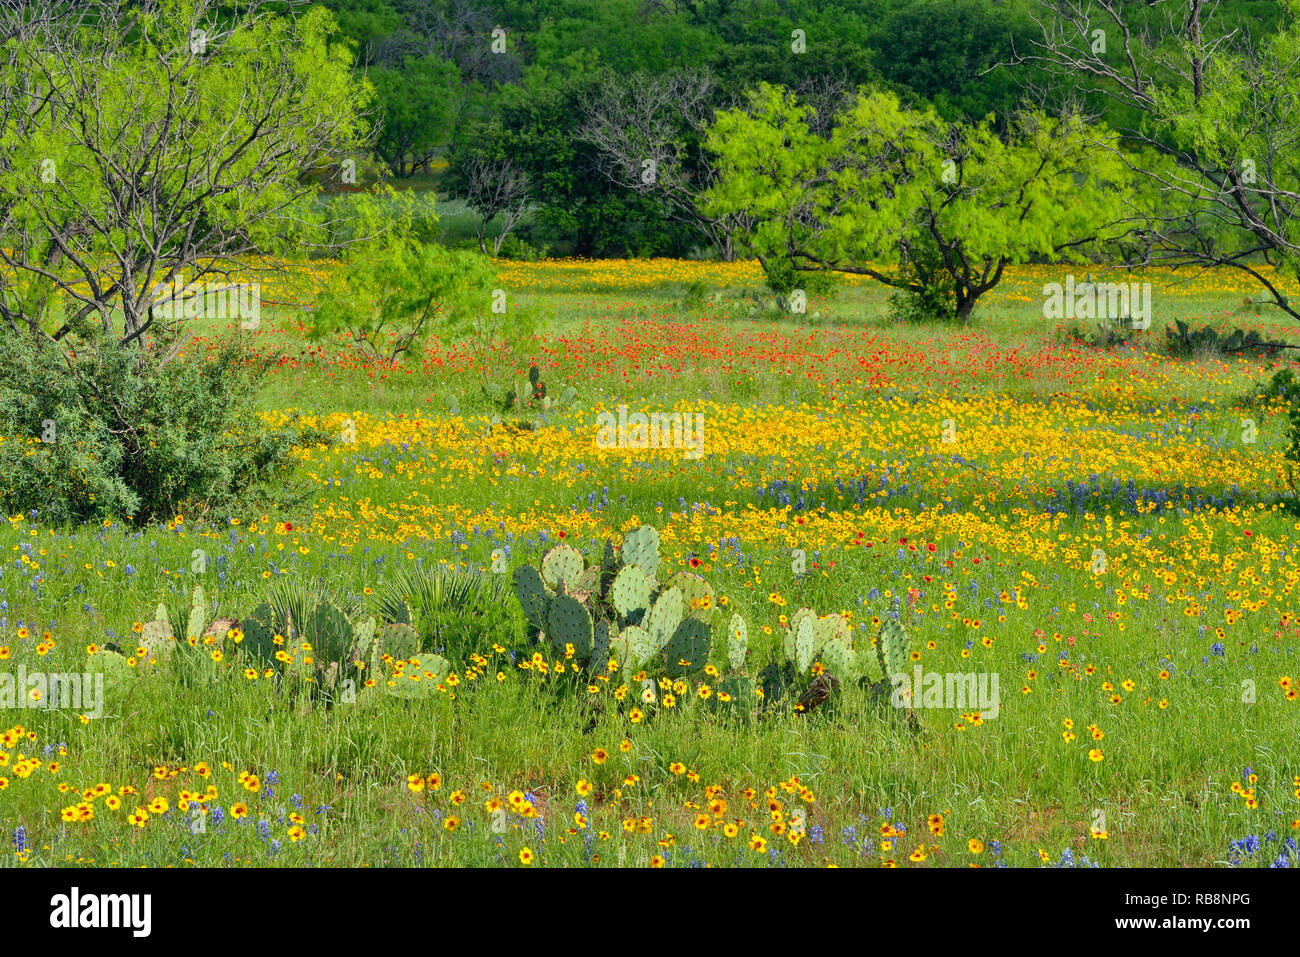 Roadside wildflowers along ranch road 152 featuring greenthread and cactus, Llano County, Texas, USA - Stock Image